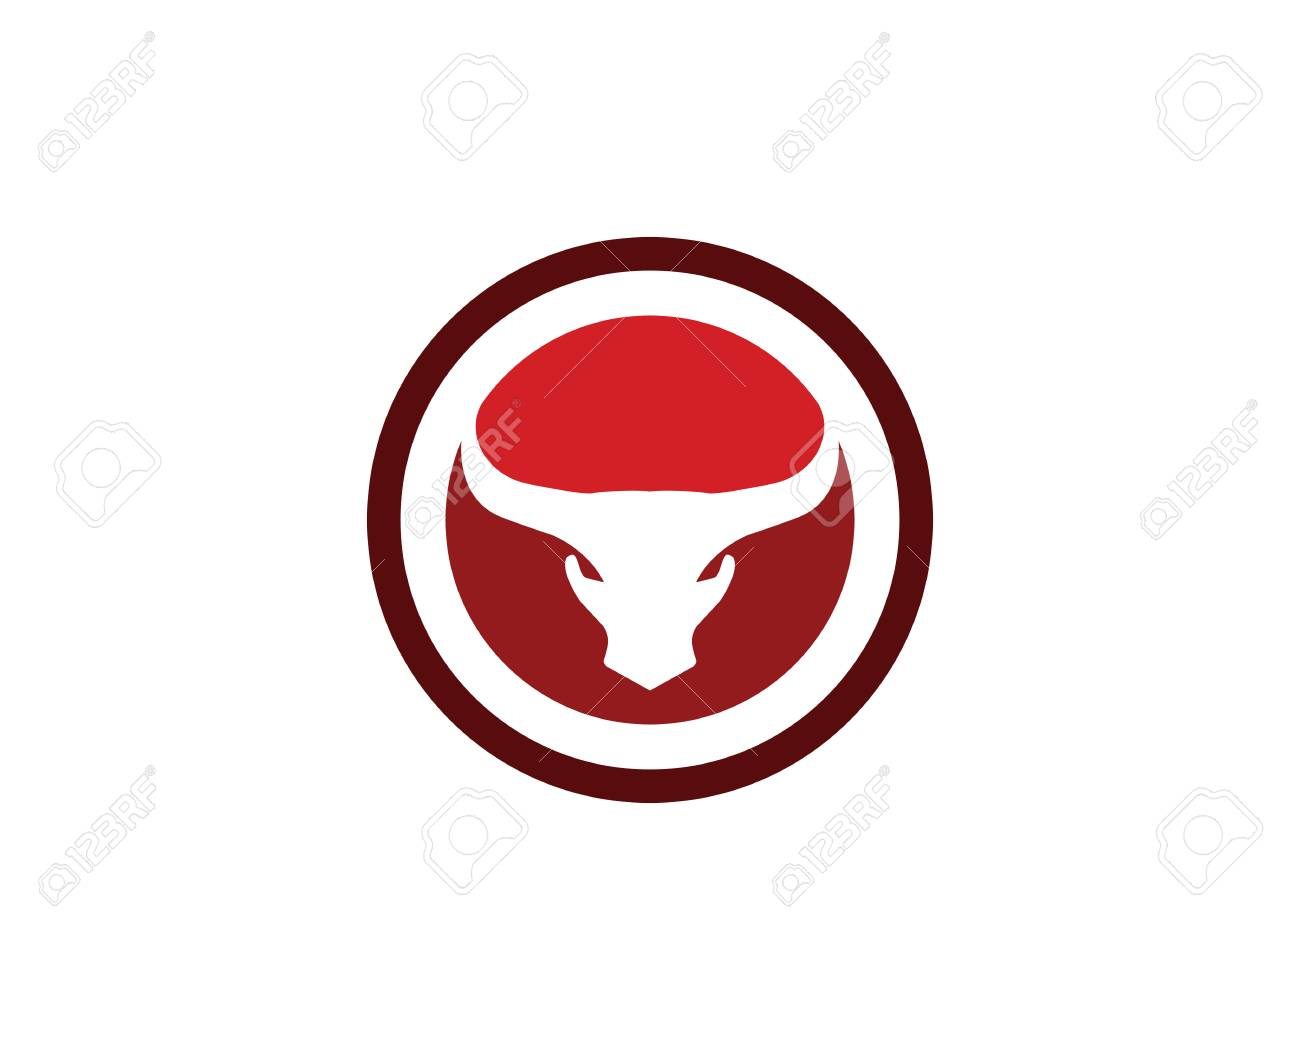 taurus logo template royalty free cliparts vectors and stock rh 123rf com taurus logo tattoo taurus logo fonts